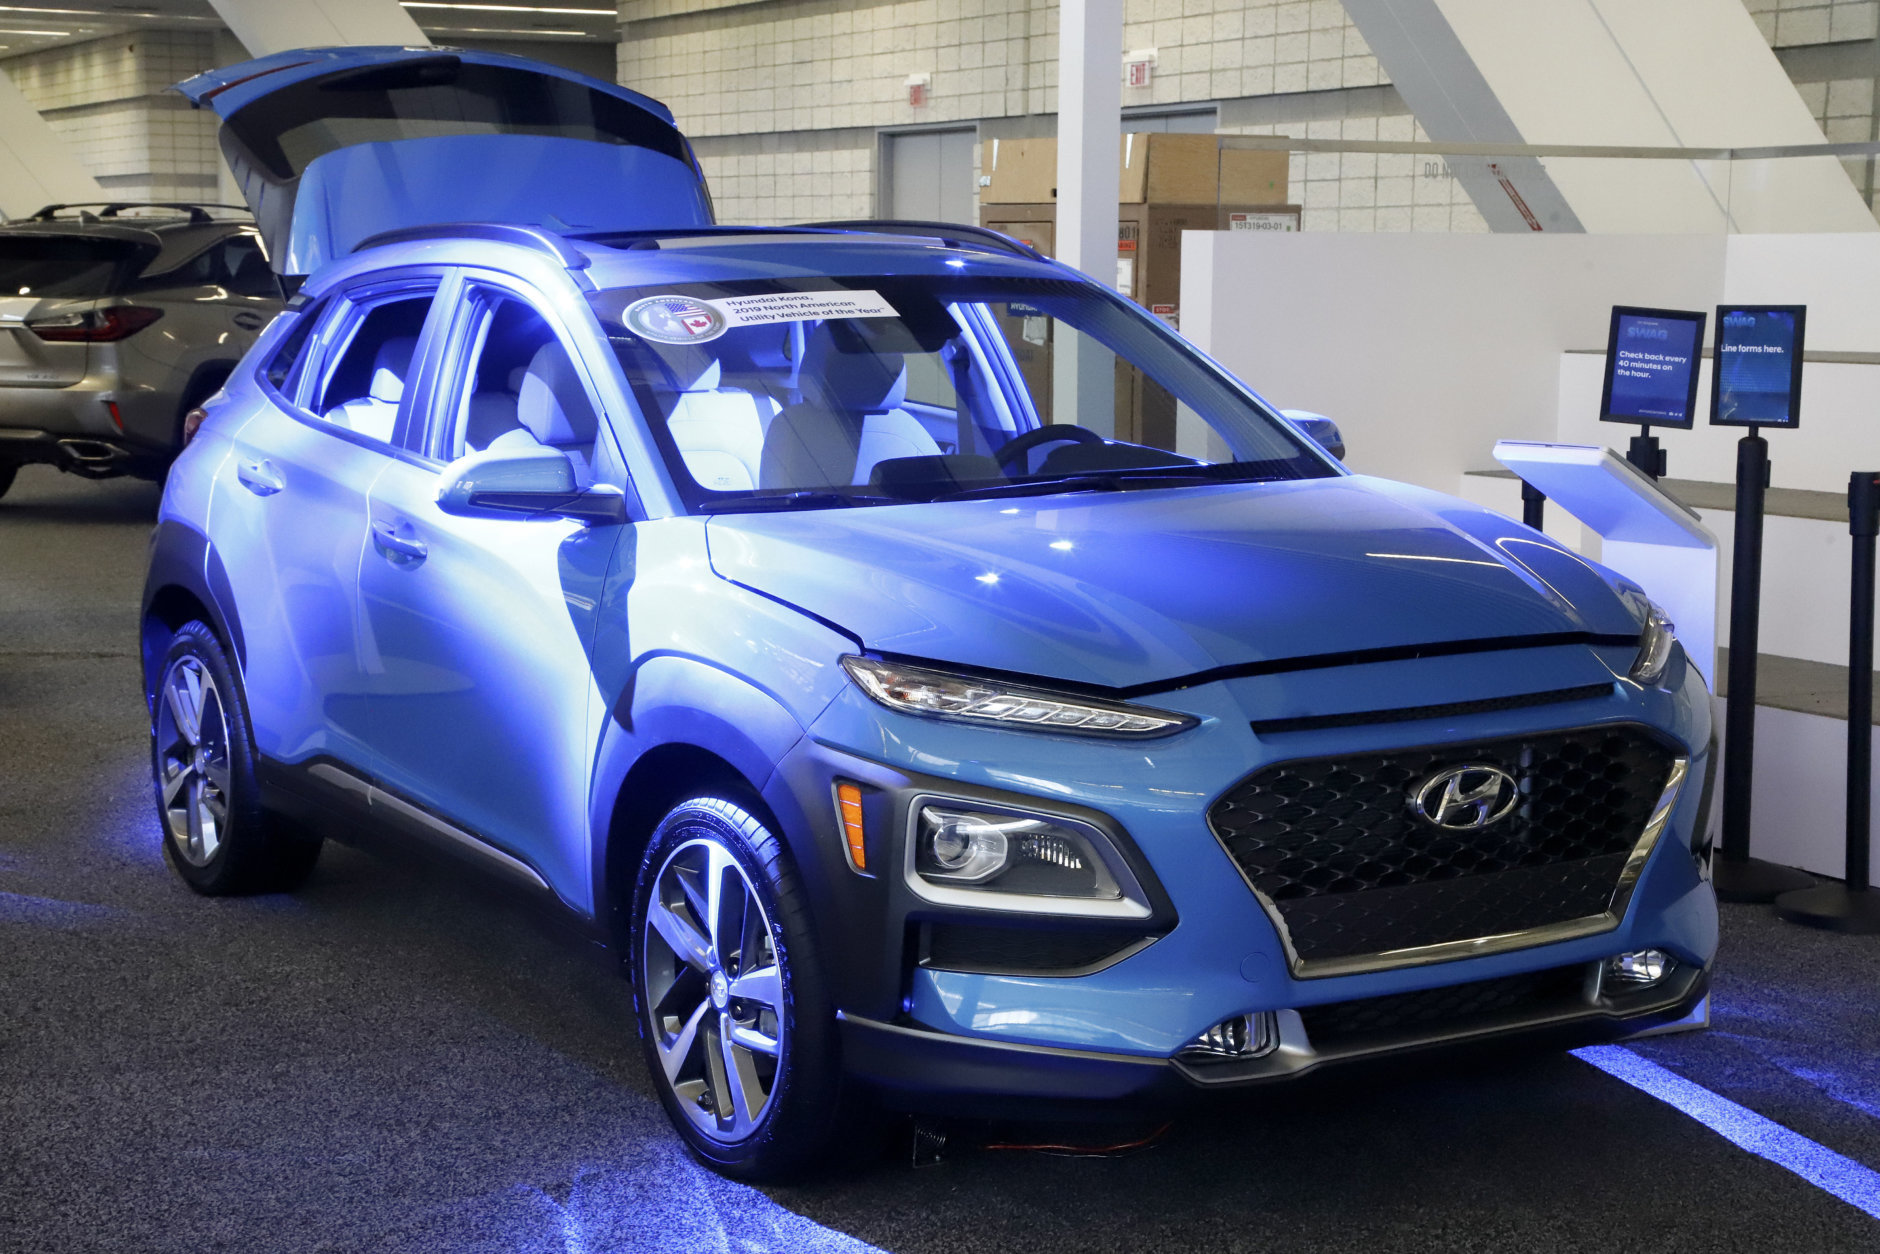 This is a 2019 Hyundai Kona on display at the 2019 Pittsburgh International Auto Show in Pittsburgh Thursday, Feb. 14, 2019. (AP Photo/Gene J. Puskar)